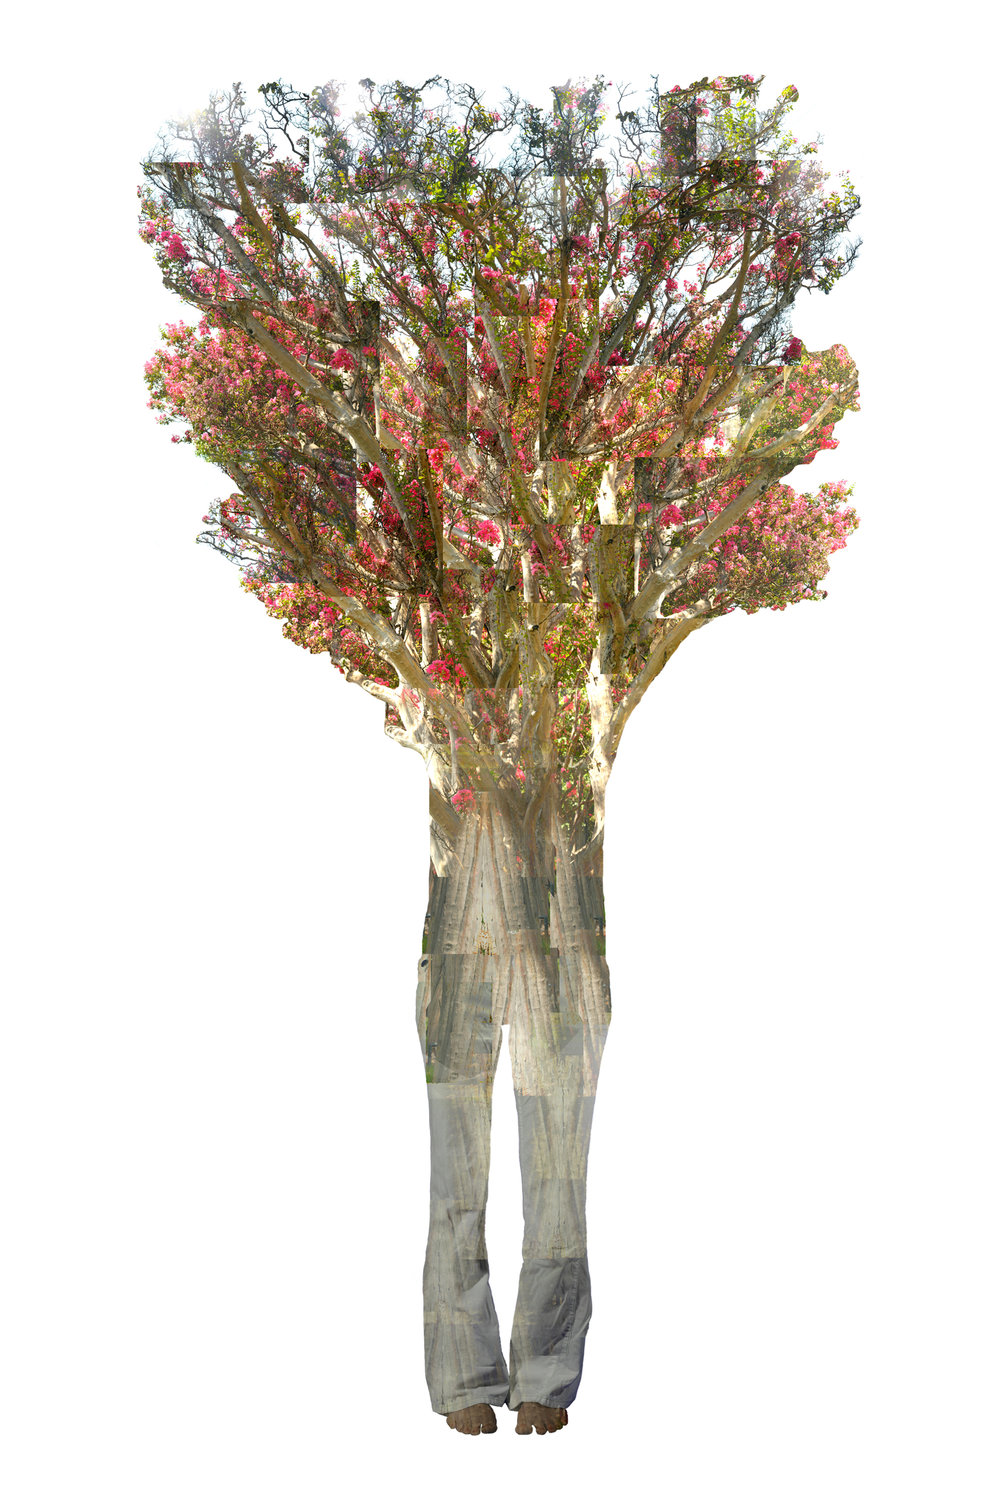 Annie Buckley,  Annie Crepe Myrtle , 2008/2014  Digital pigment print, 24 x 16 in, edition of 30, 84 x 32 in, edition of 3   Inquire